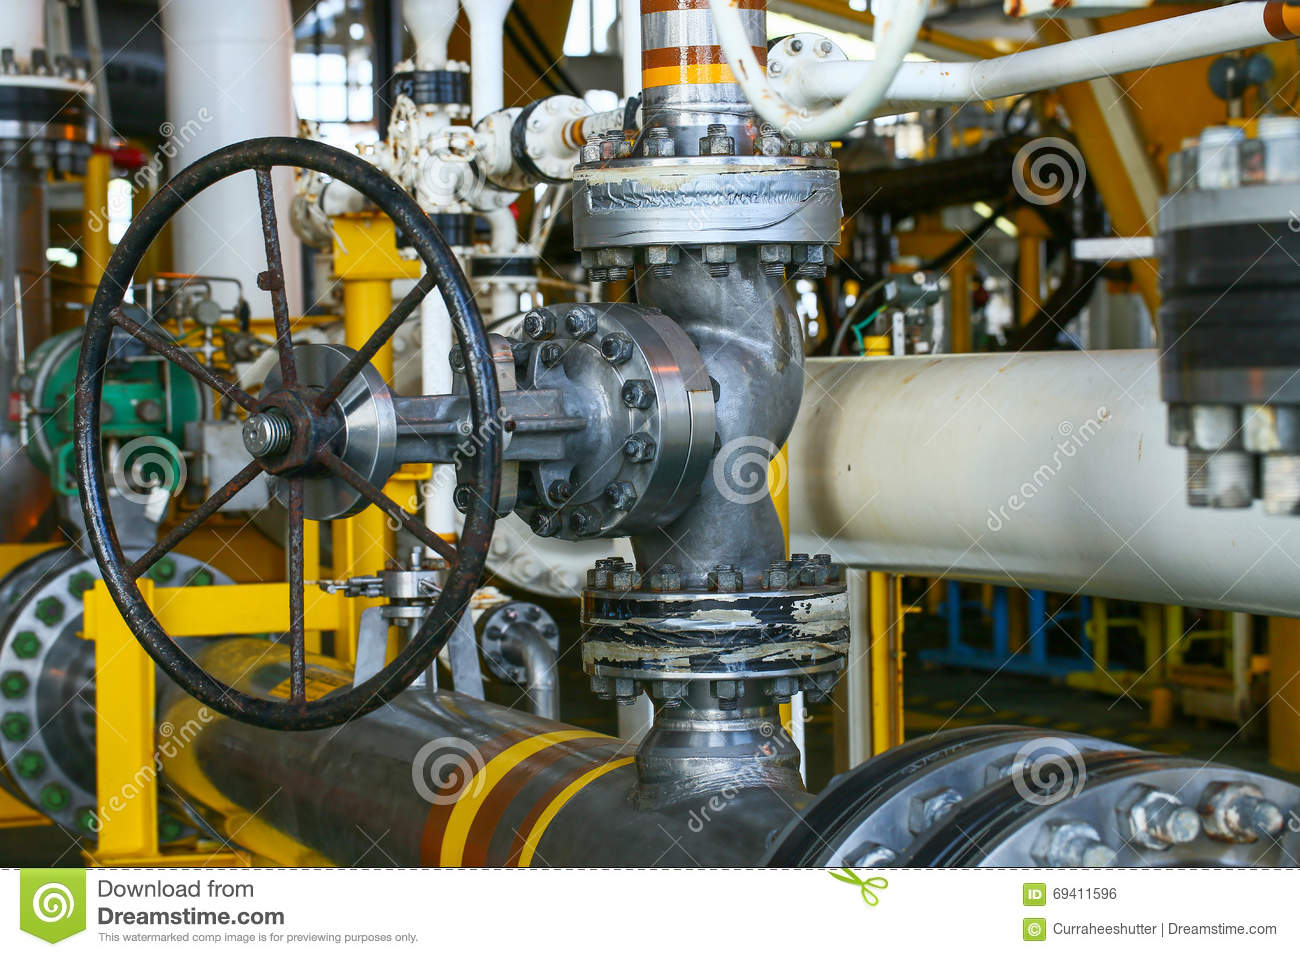 Valves manual in the process. Production process used manual valve to  control the system, duplex valve or stainless steel valve in oil and gas  process and ...